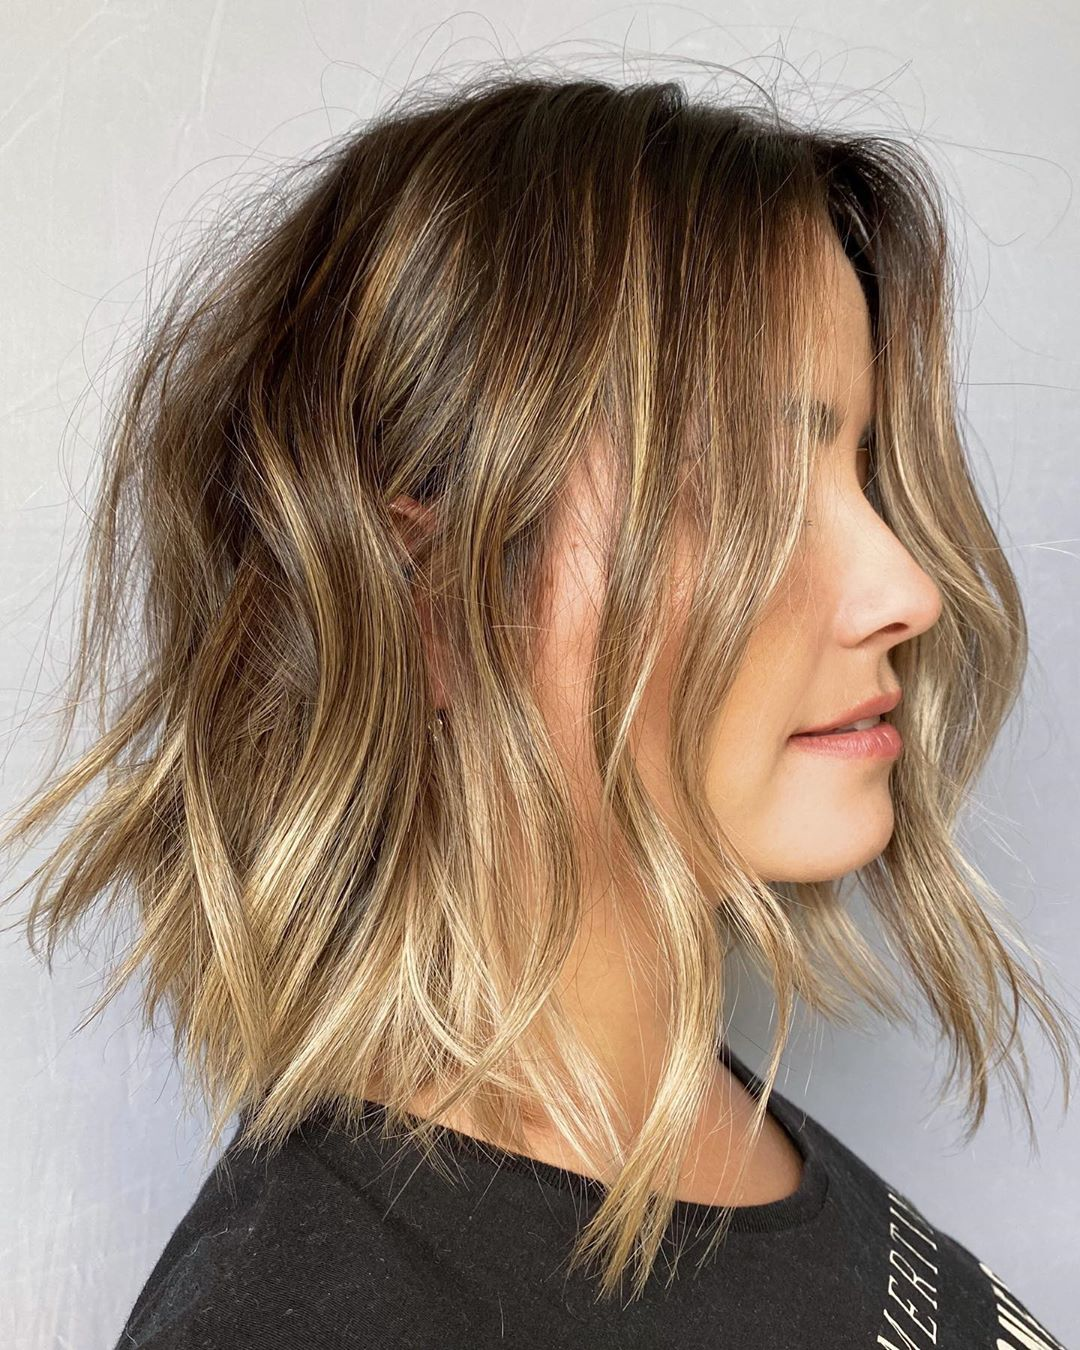 Bronde Balayage Hair for Fall